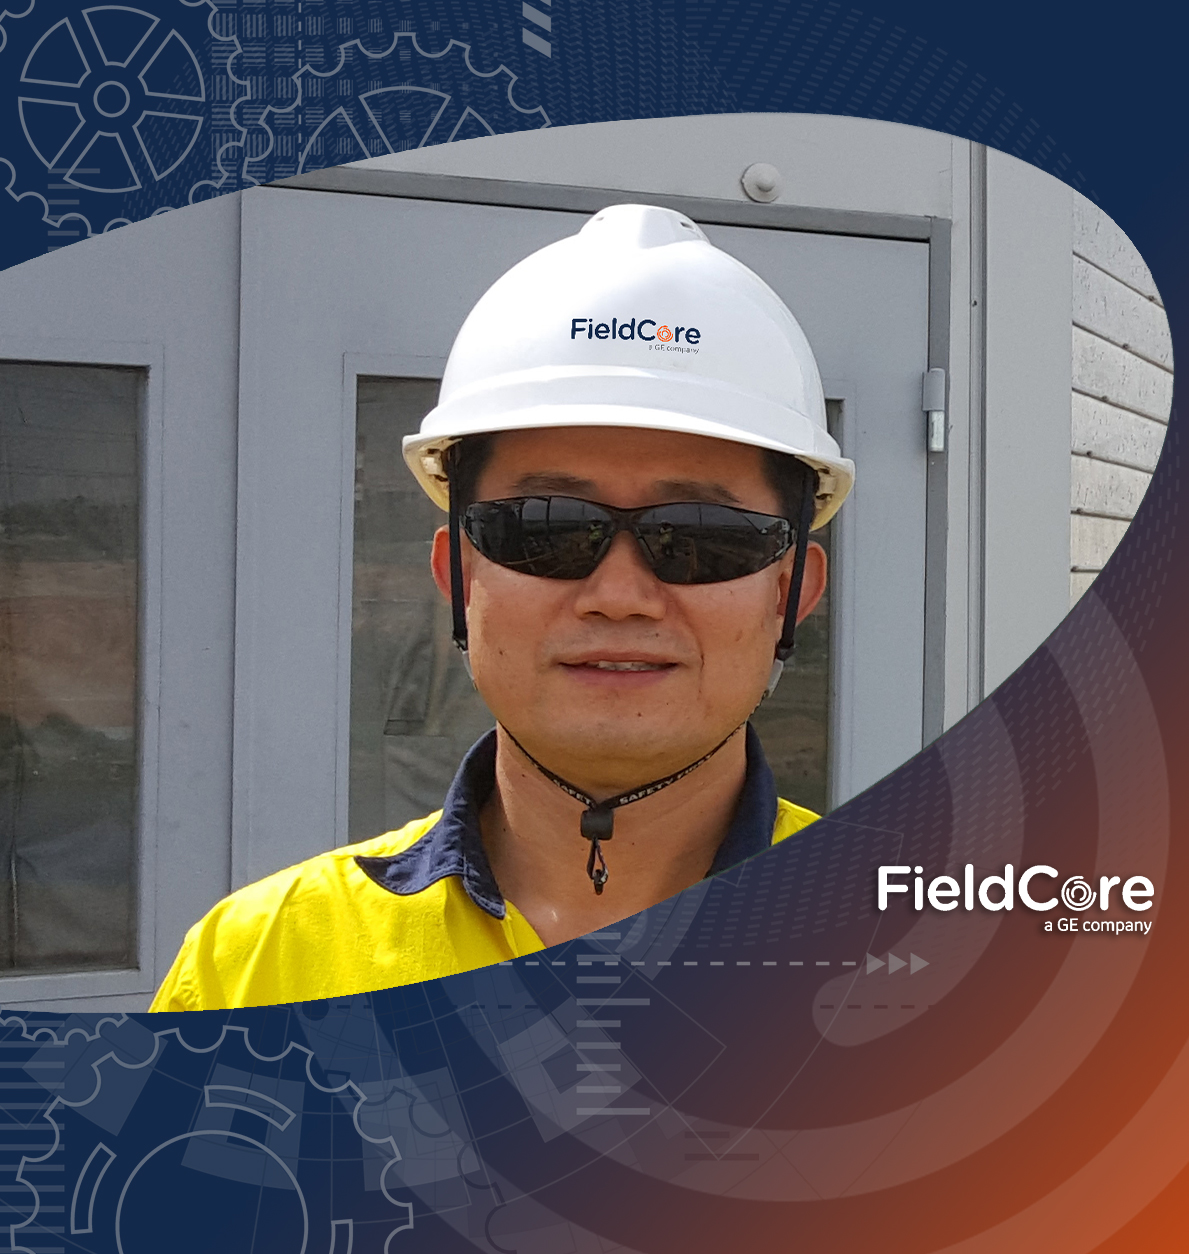 MEET SAM JUNG – ONE OF FIELDCORE'S FIRST CHIEF TECHNICAL FIELD ADVISOR